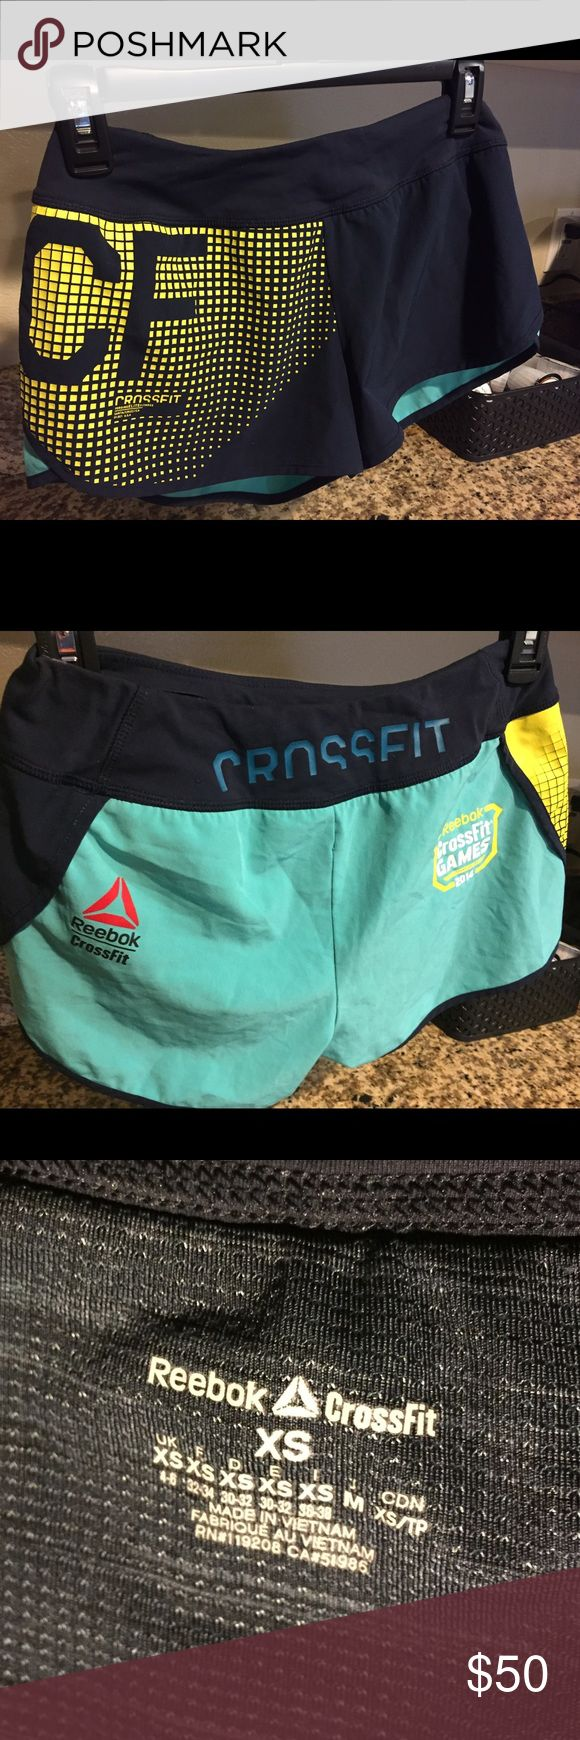 Reebok CrossFit Games 2014 Shorts Teal/Mint Navy 2014 women's Reebok CrossFit shorts - Size XS (fit like a small) in a teal/mint back with a navy blue and yellow front print. Worn maybe 4-5 times reebok Shorts